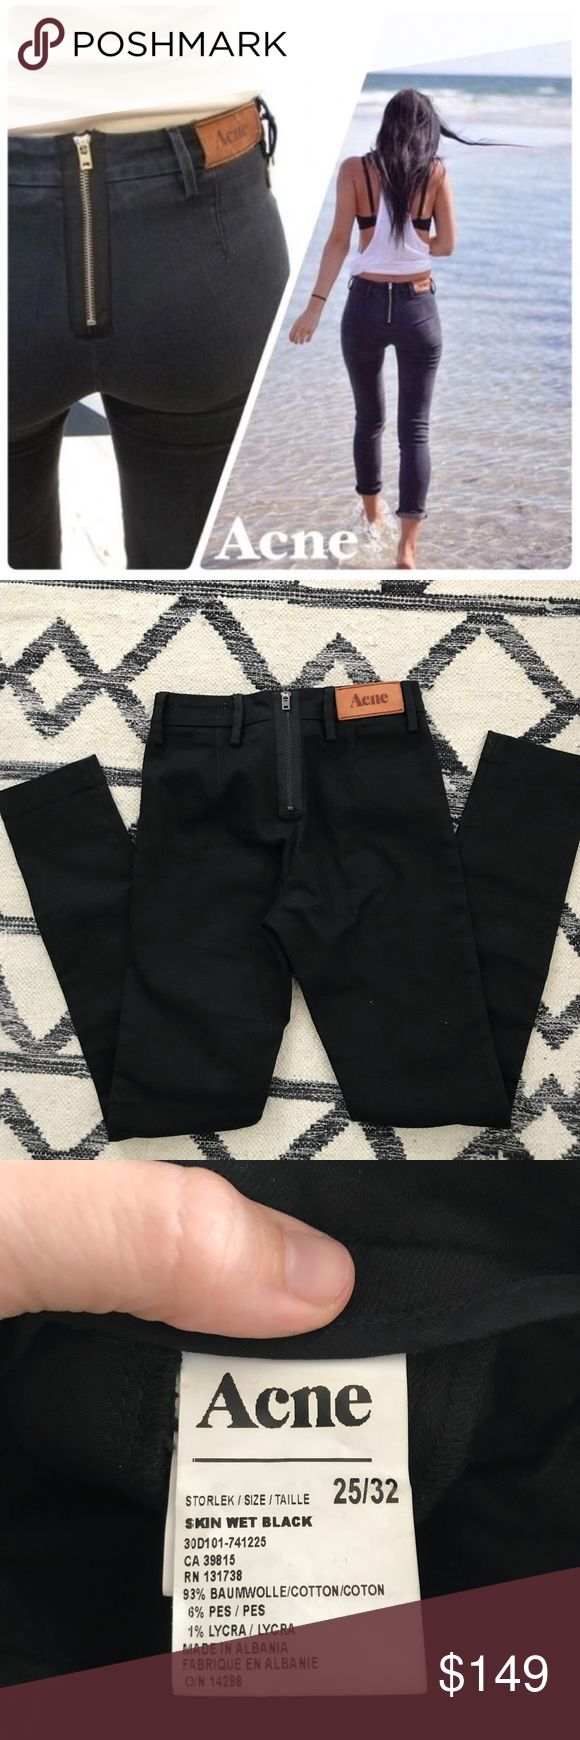 """Acne Rocca Jeans in Skin Wet Black Coolest back zip acne jeans in like new condition just could scratches on the leather patch are only signs of wear. Inseam is 32"""" and rise of 9"""". Offers and questions welcome! Acne Jeans Skinny"""